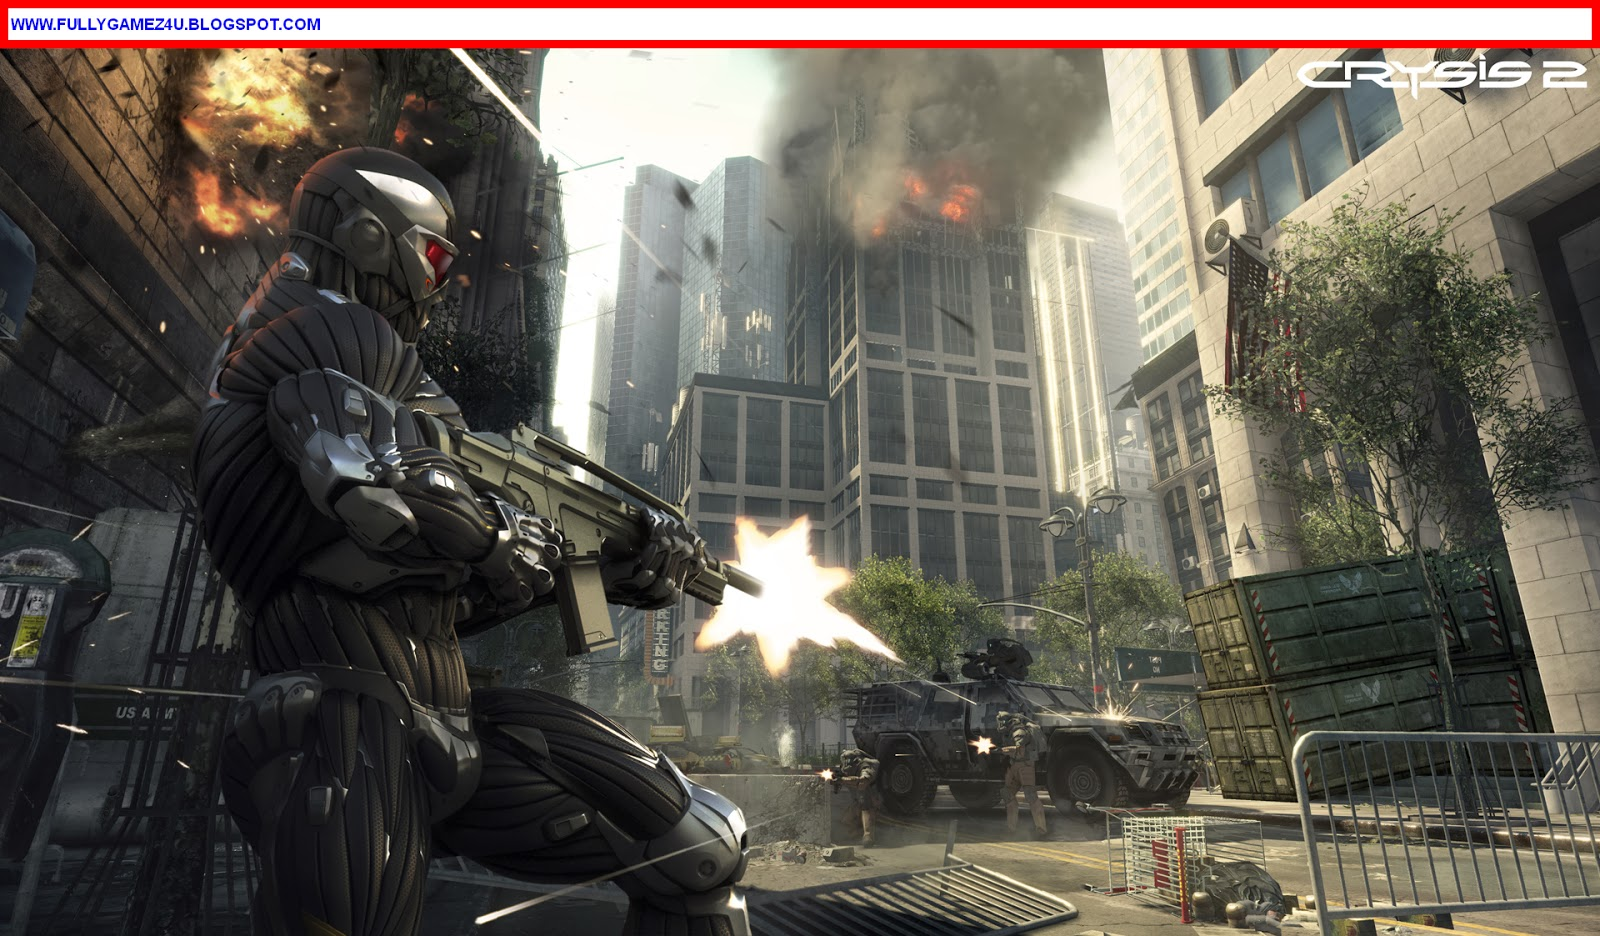 Download Crysis 2 Game For Pc Full Version